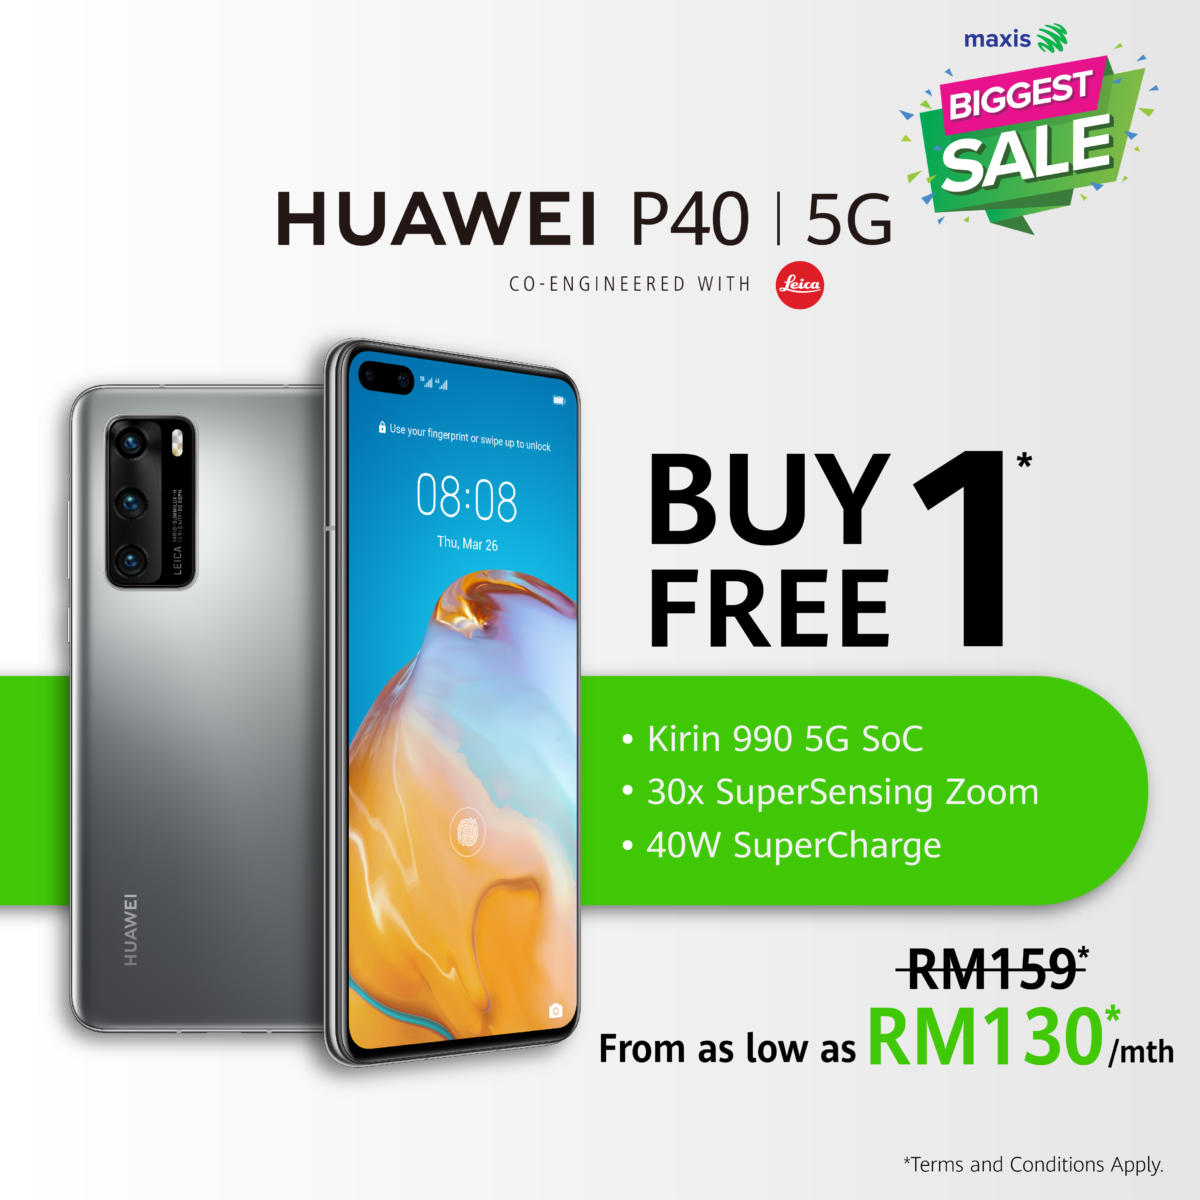 HUAWEI P40 Maxis Biggest Sale